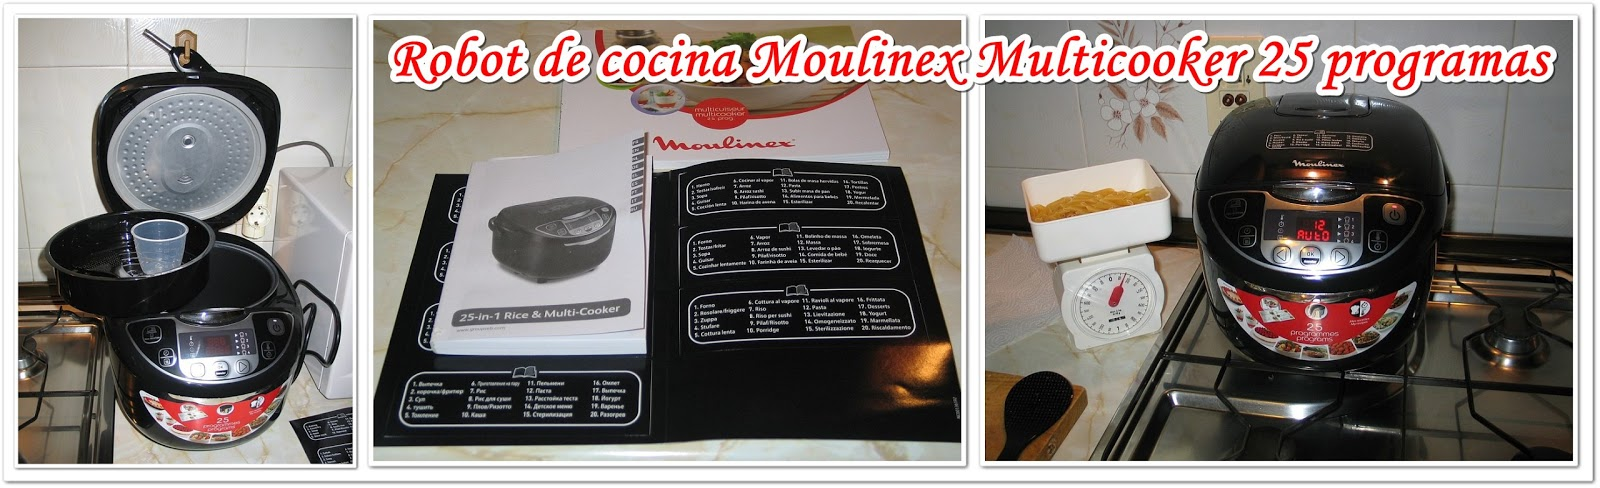 Recetario moulinex maxichef advanced